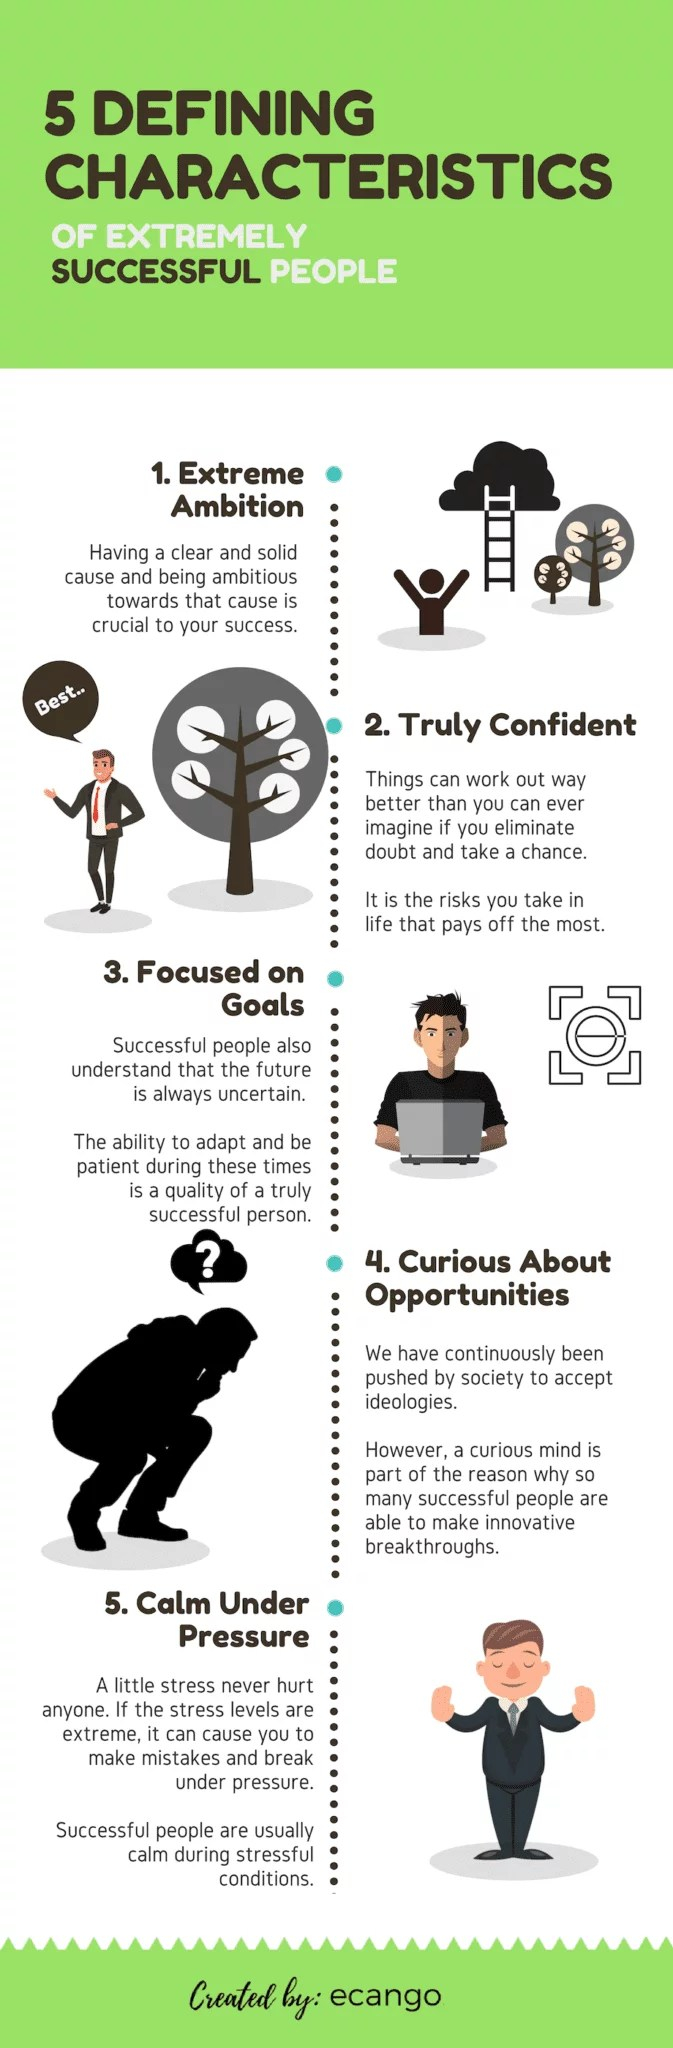 5 defining characteristics of extremely successful people